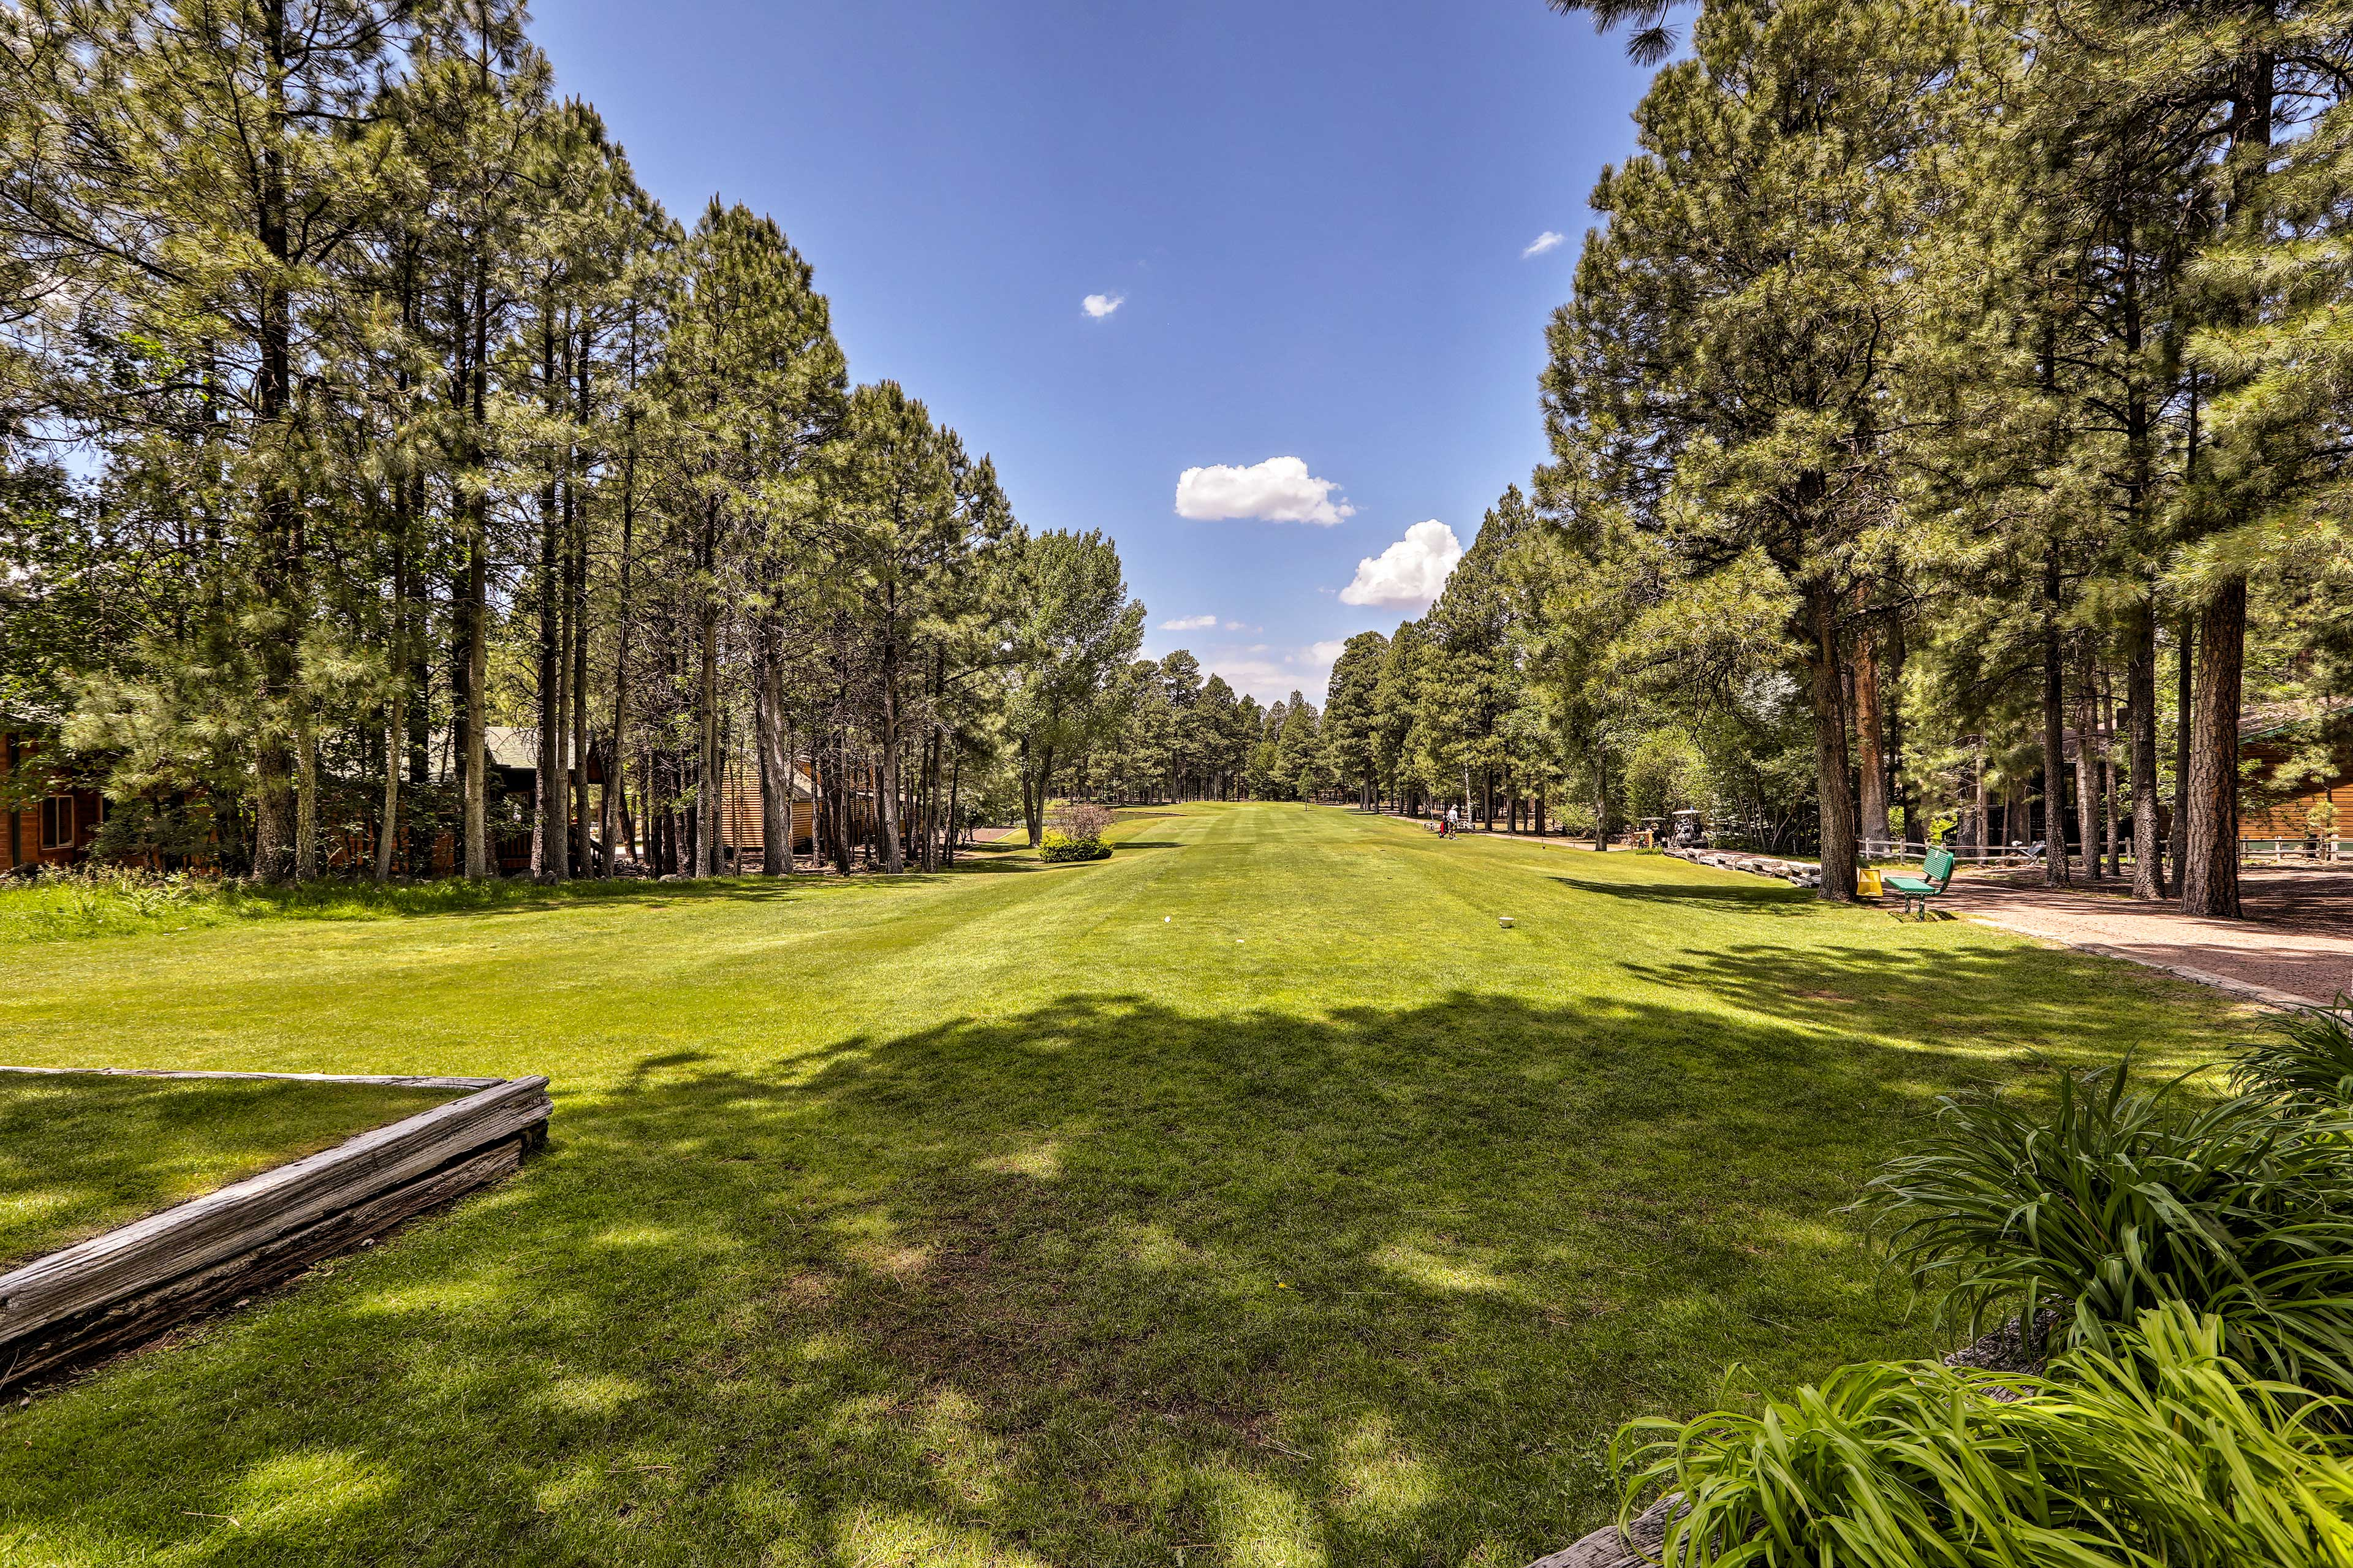 For an additional fee, you can access the Pinetop Lake Country Club amenities.